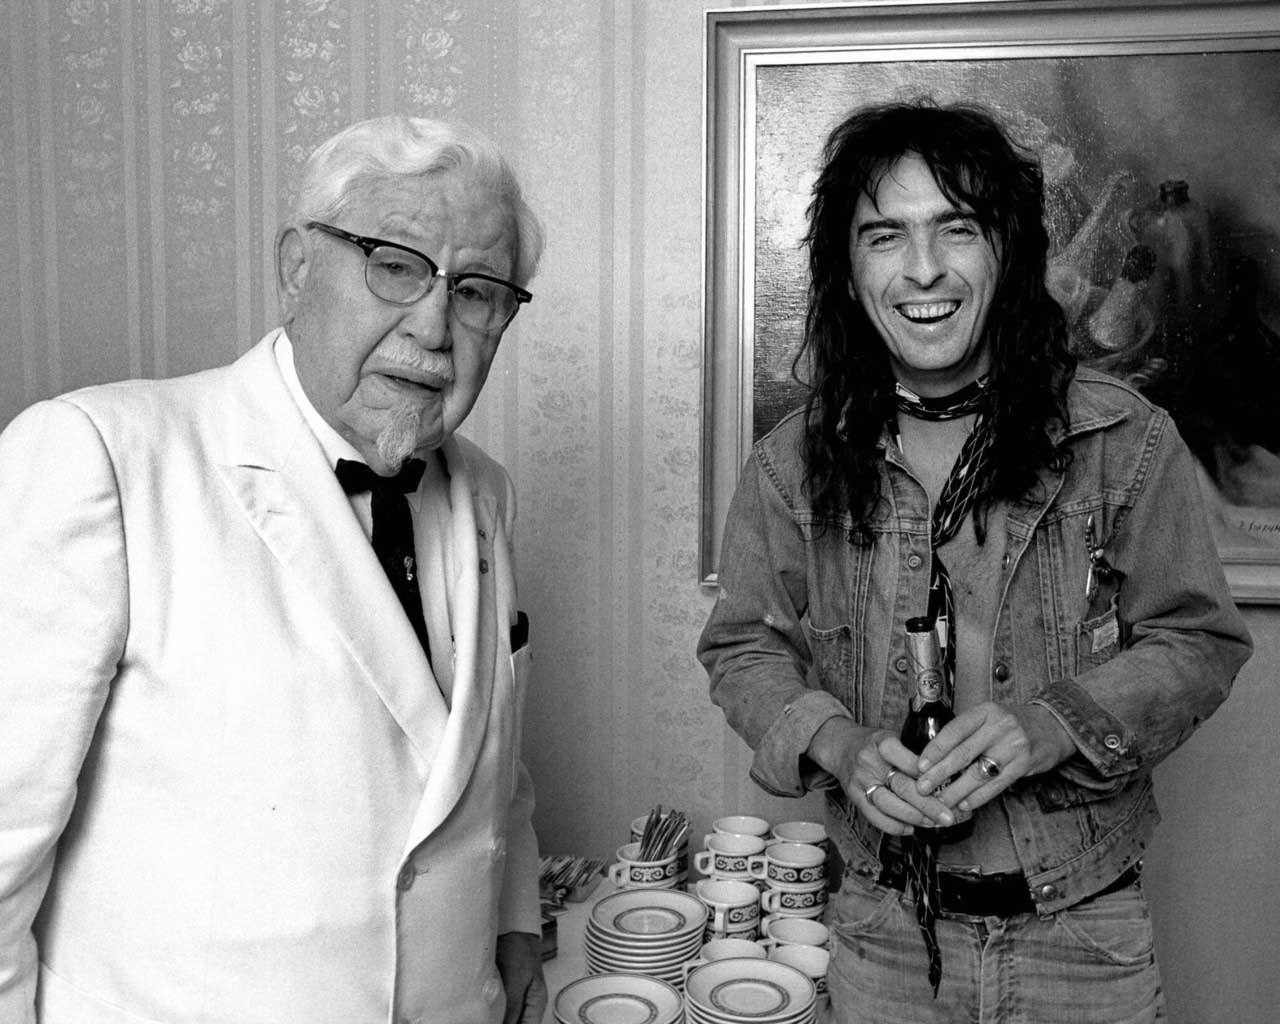 harland-sanders-and-alice-cooper